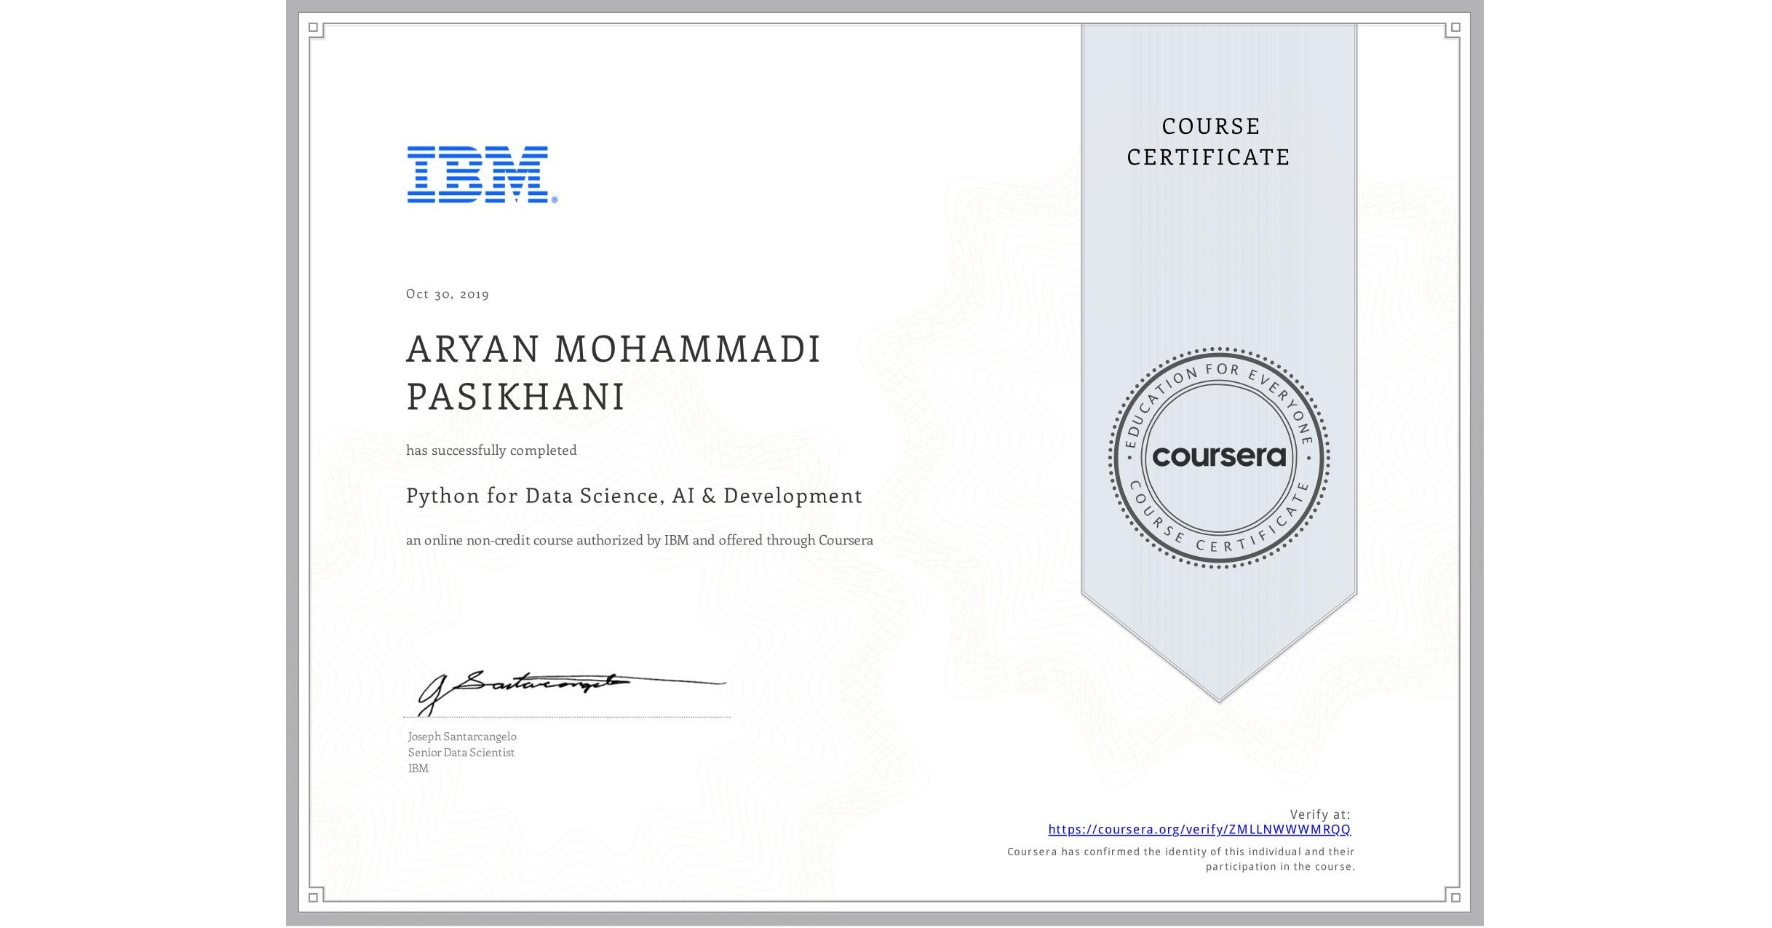 View certificate for ARYAN MOHAMMADI PASIKHANI, Python for Data Science, AI & Development, an online non-credit course authorized by IBM and offered through Coursera